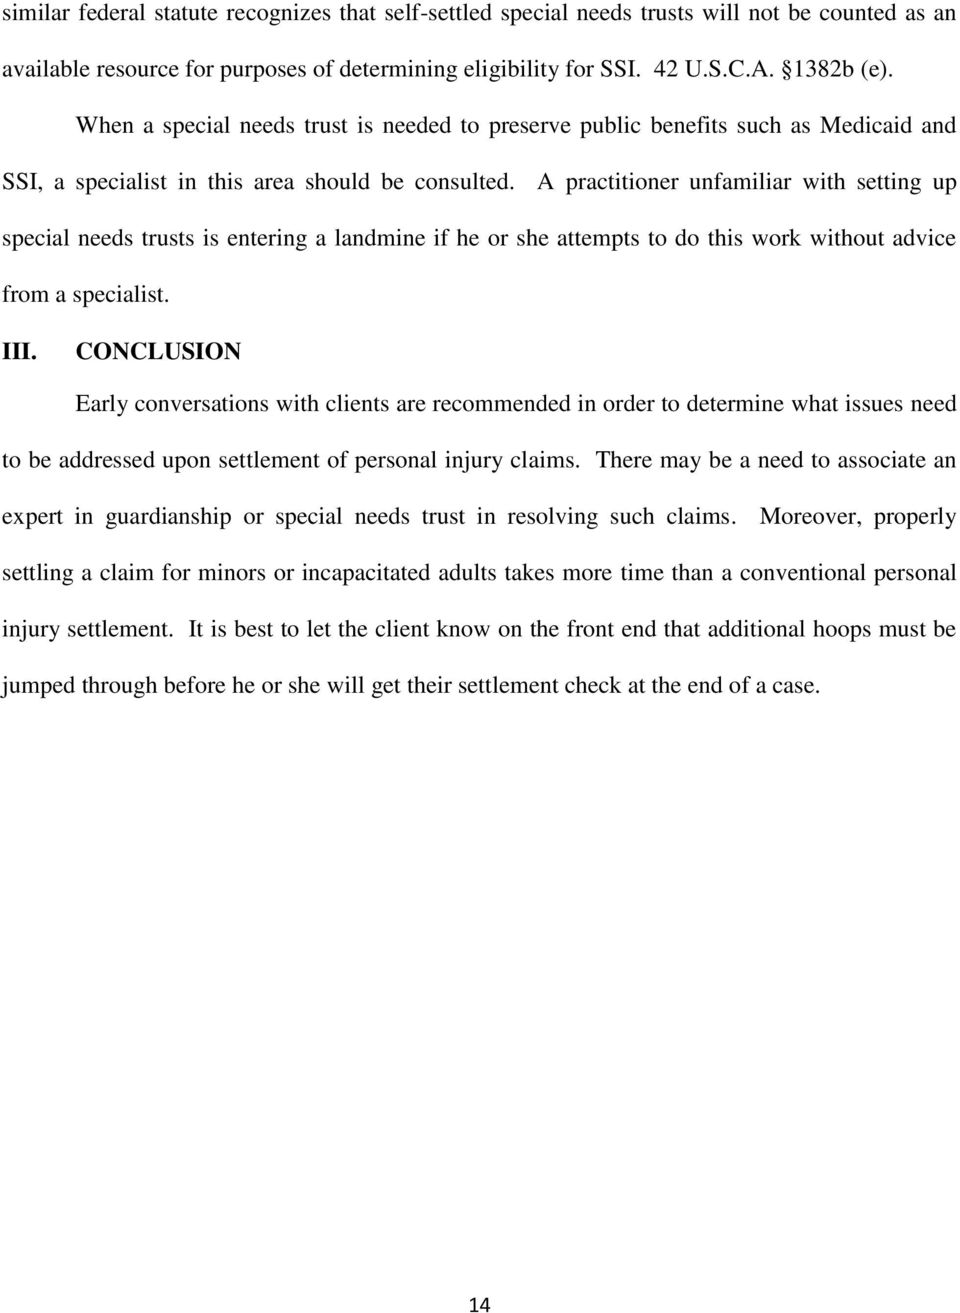 A practitioner unfamiliar with setting up special needs trusts is entering a landmine if he or she attempts to do this work without advice from a specialist. III.